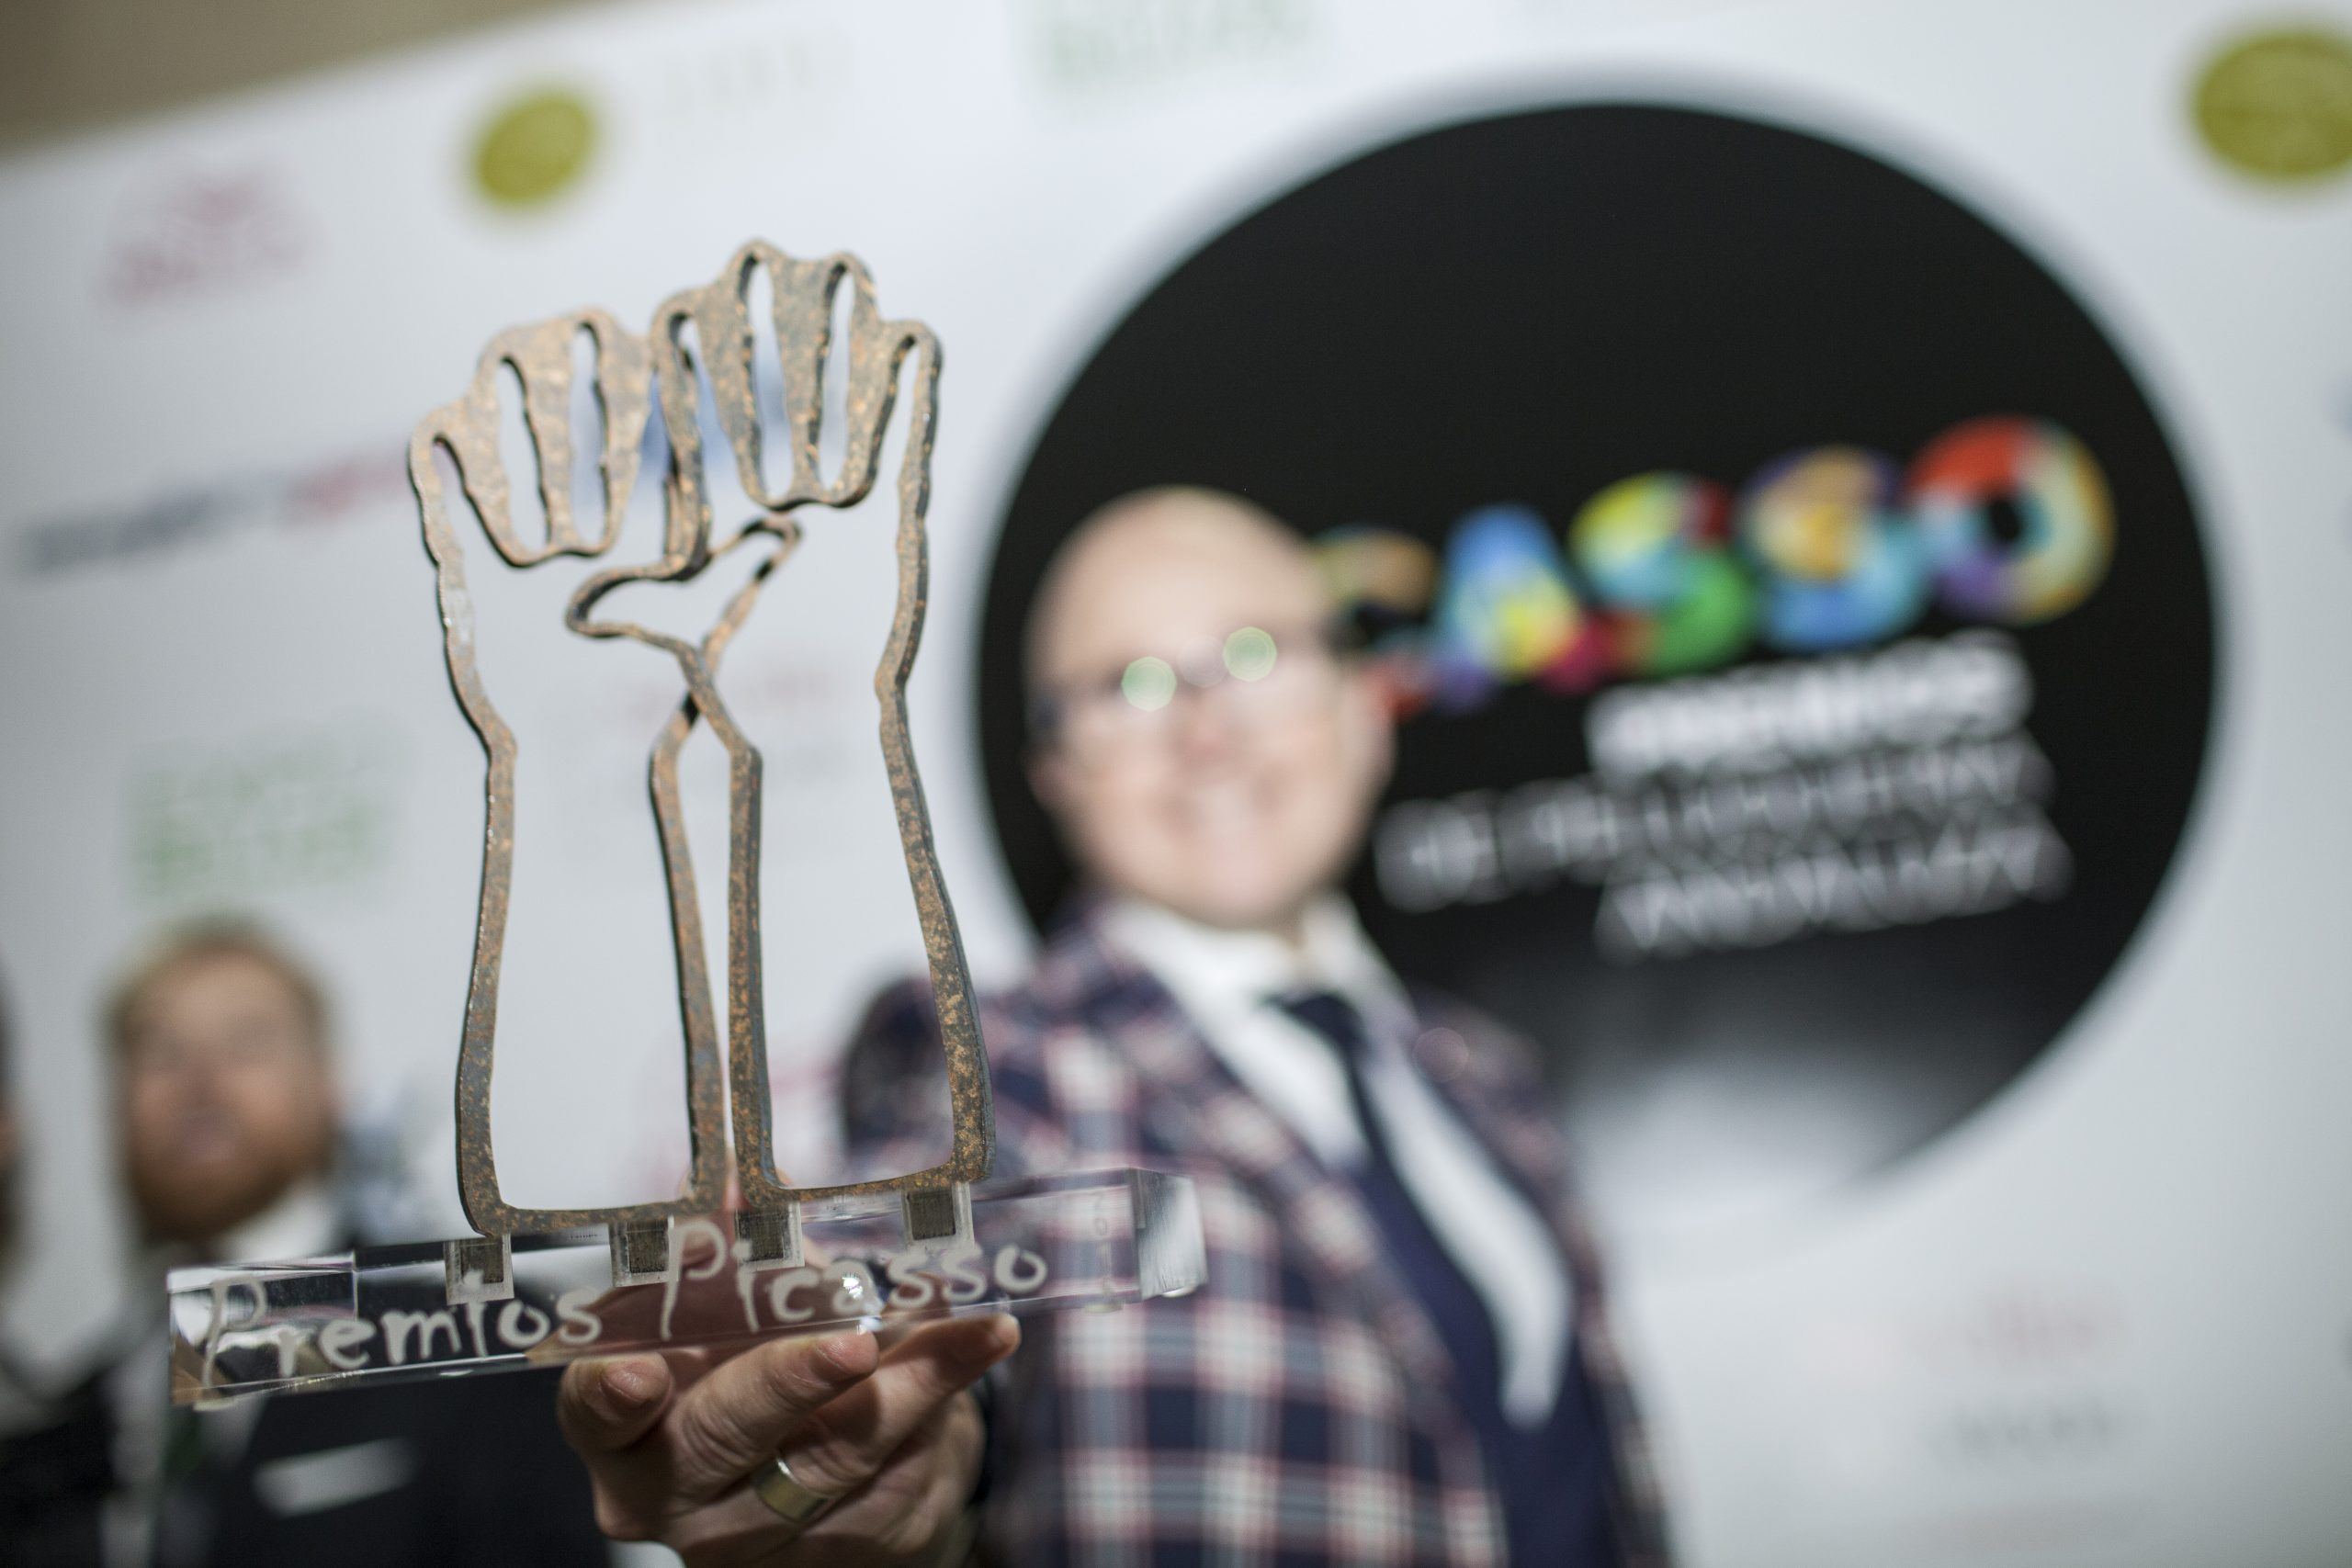 Premios Picasso 2016 scaled